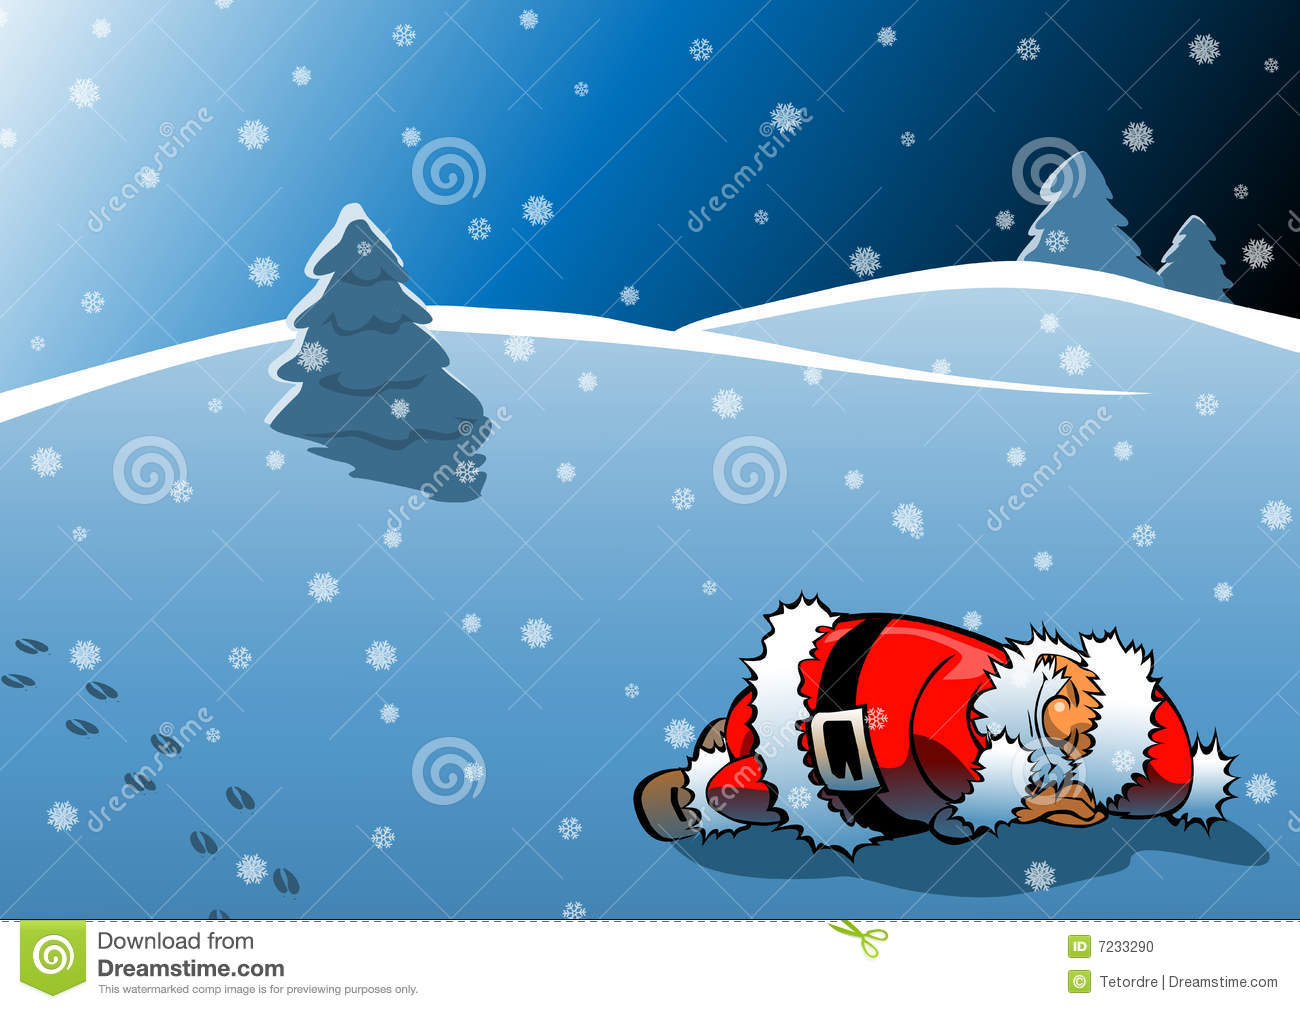 Santa Sleeping Clipart.